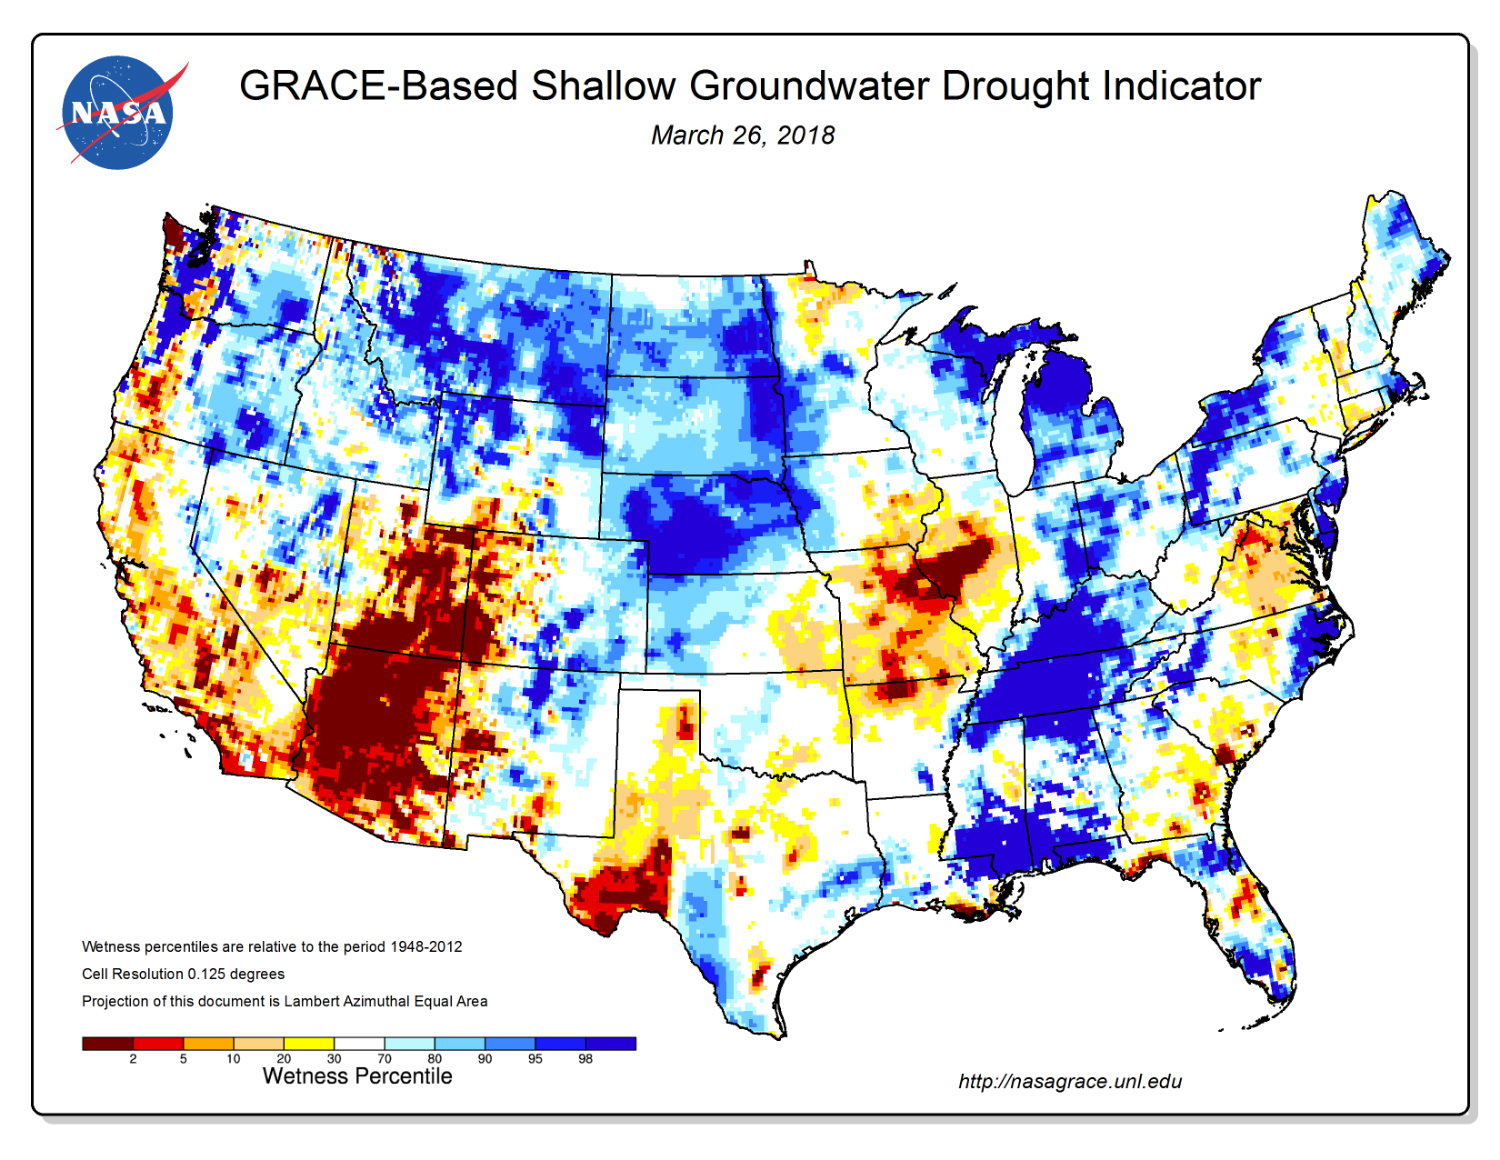 While the GRACE mission was active, scientists at NASA's Goddard Space Flight Center generated groundwater and soil moisture drought indicators like this every week from GRACE data on terrestrial water storage and other observations, using a numerical model of land surface water and energy processes.